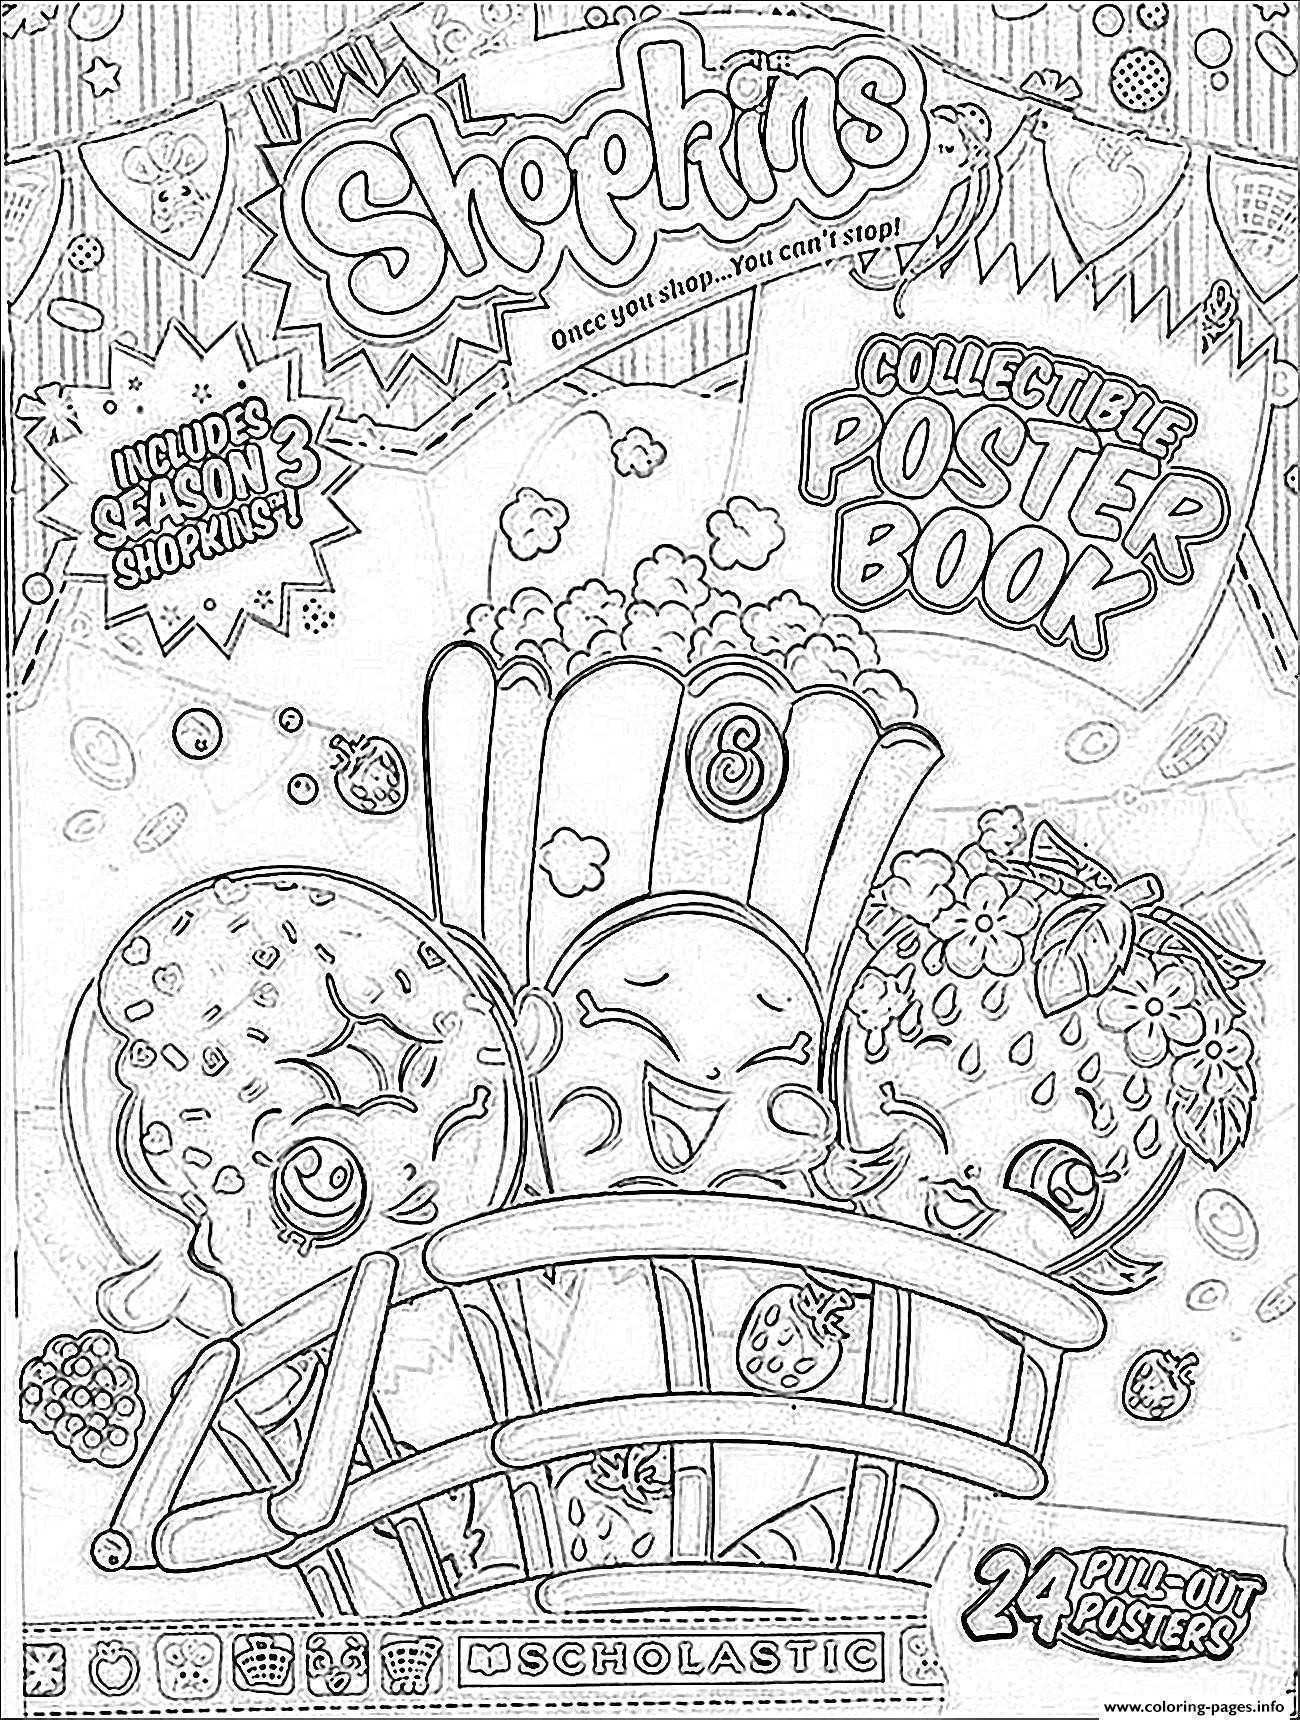 to Print New Print Coloring Pages Luxury S S Media Cache